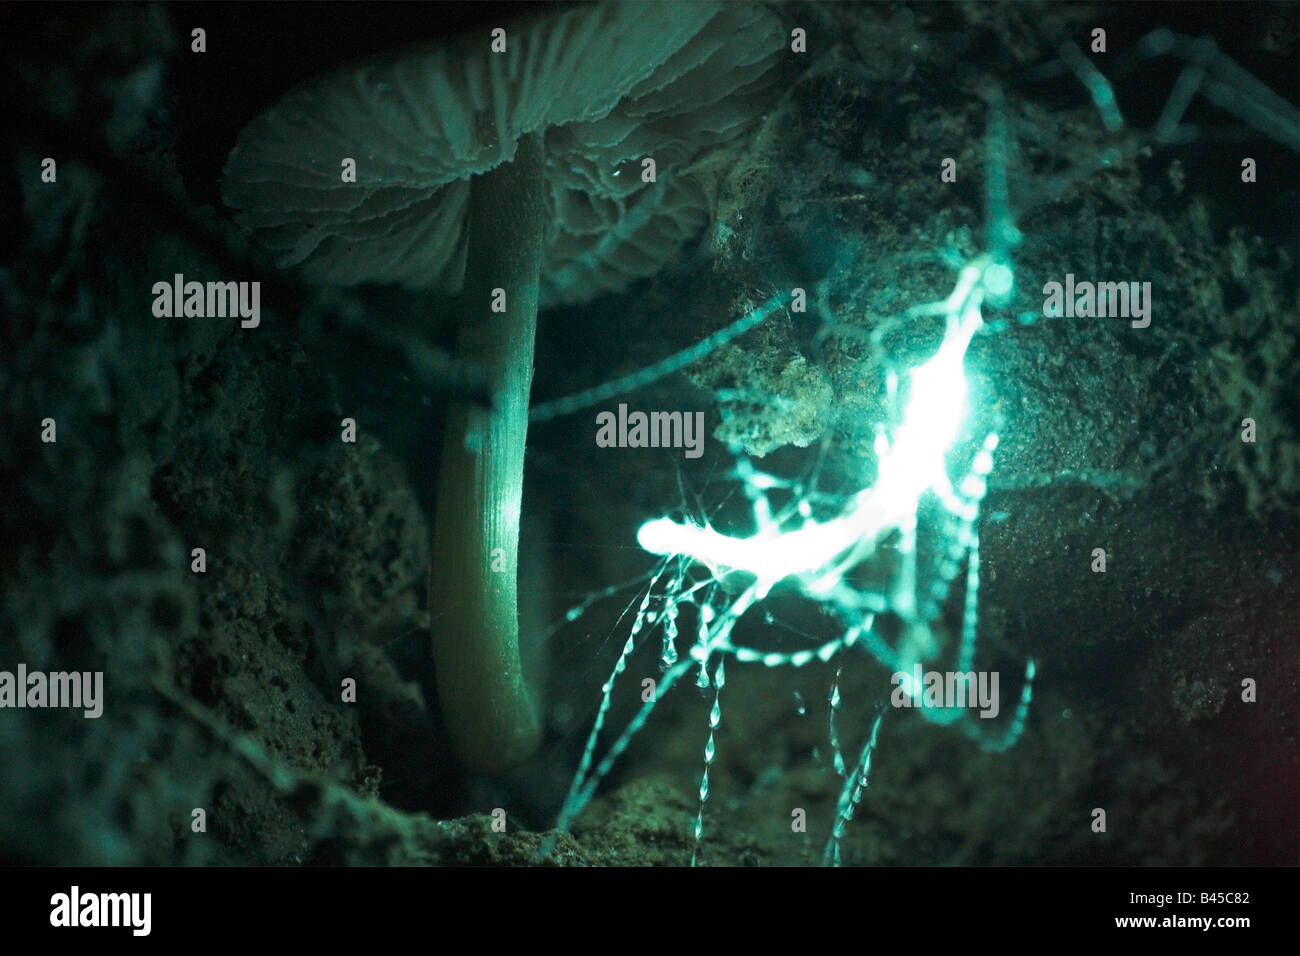 Glow Worm Cave Stock Photos & Glow Worm Cave Stock Images - Alamy